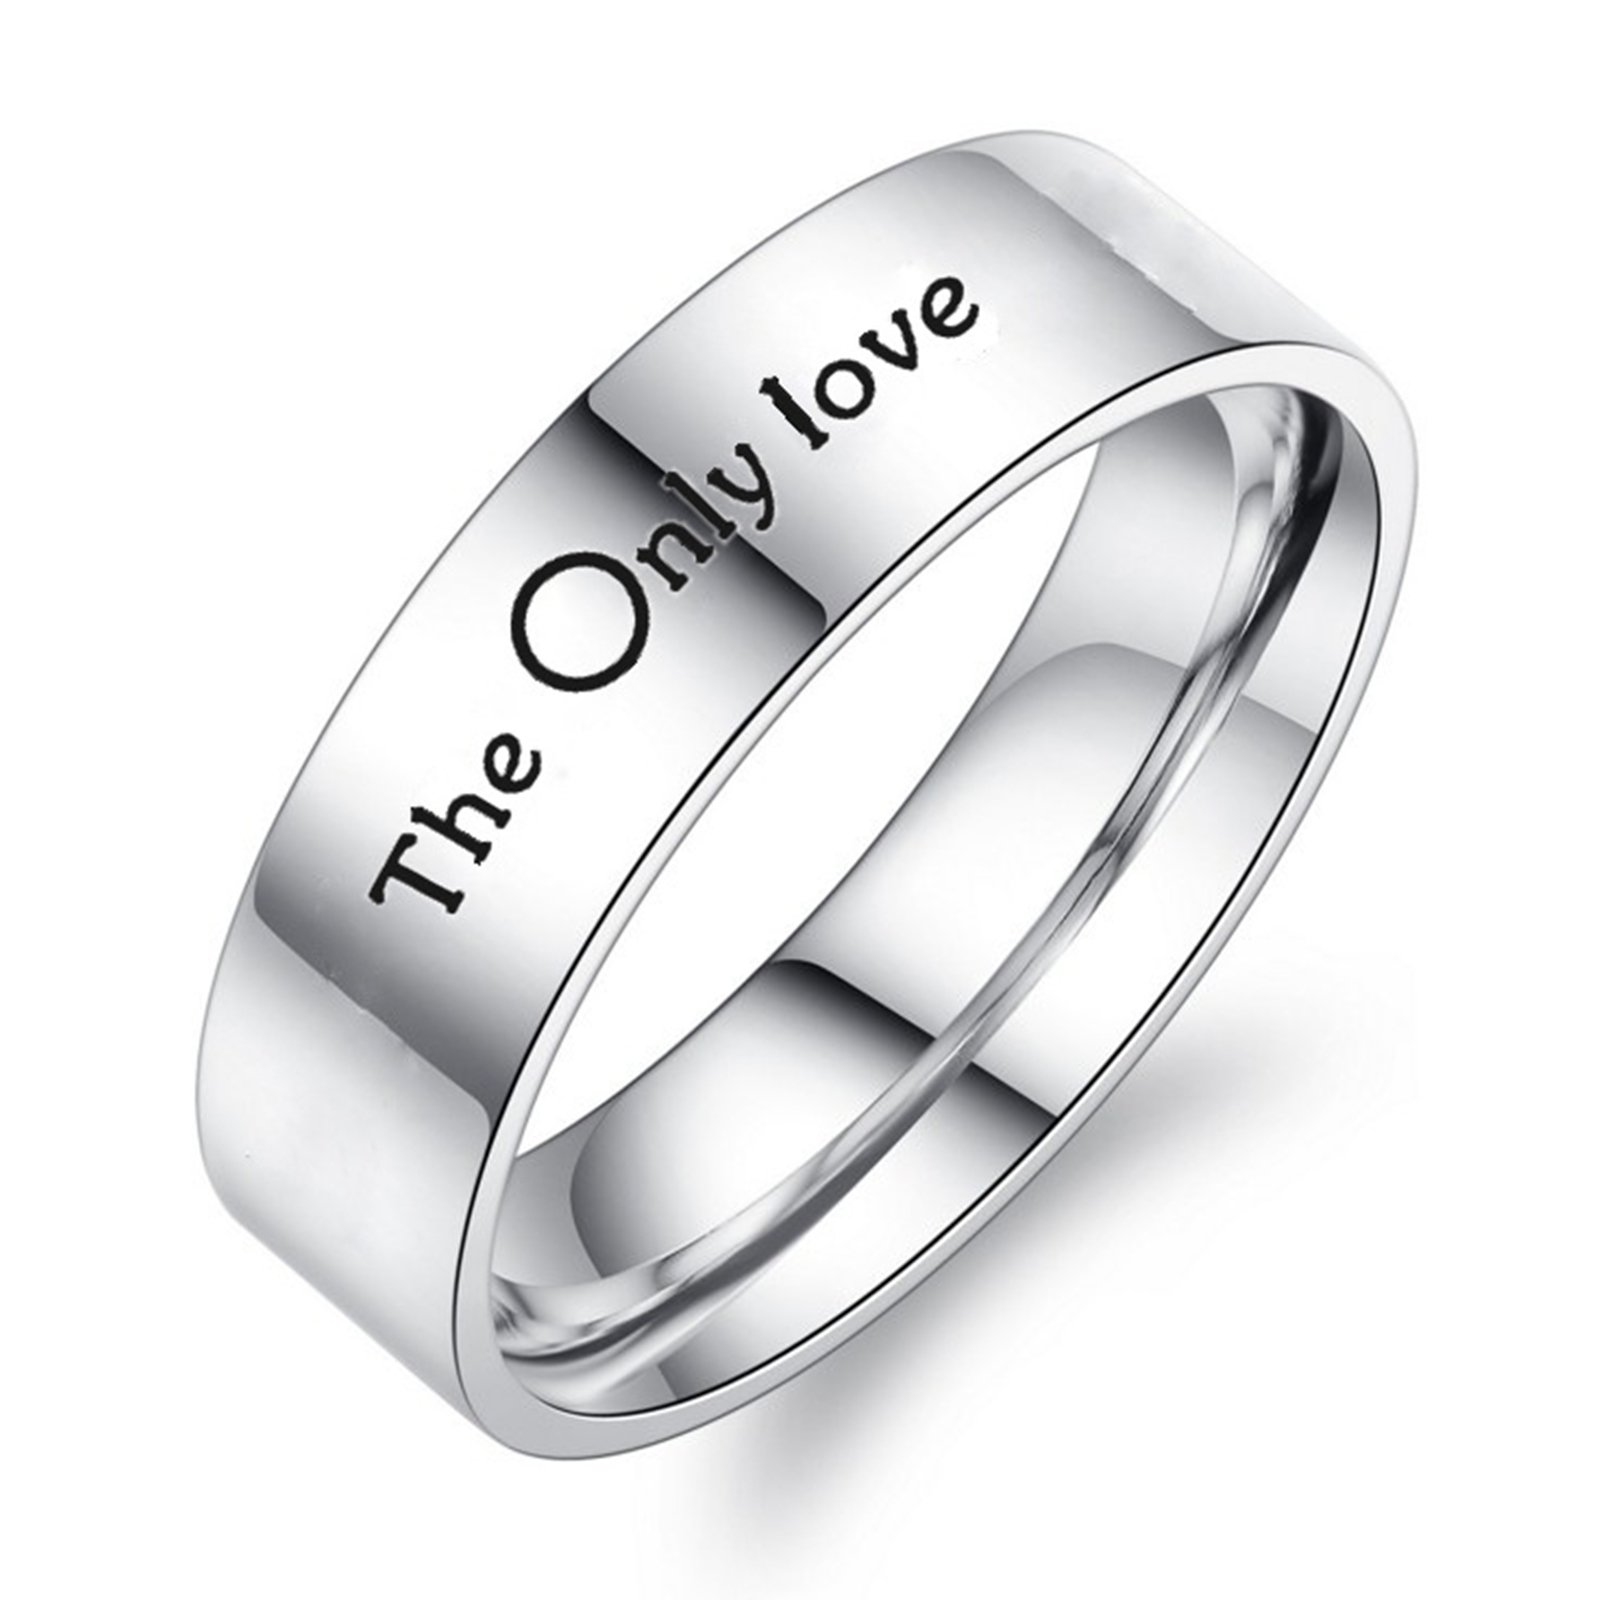 Daesar 1PCS Stainless Steel Rings Couple Ring Engraving The Only Love Ring Commitment To Personalized Silver Ring Size 10 by Daesar (Image #1)